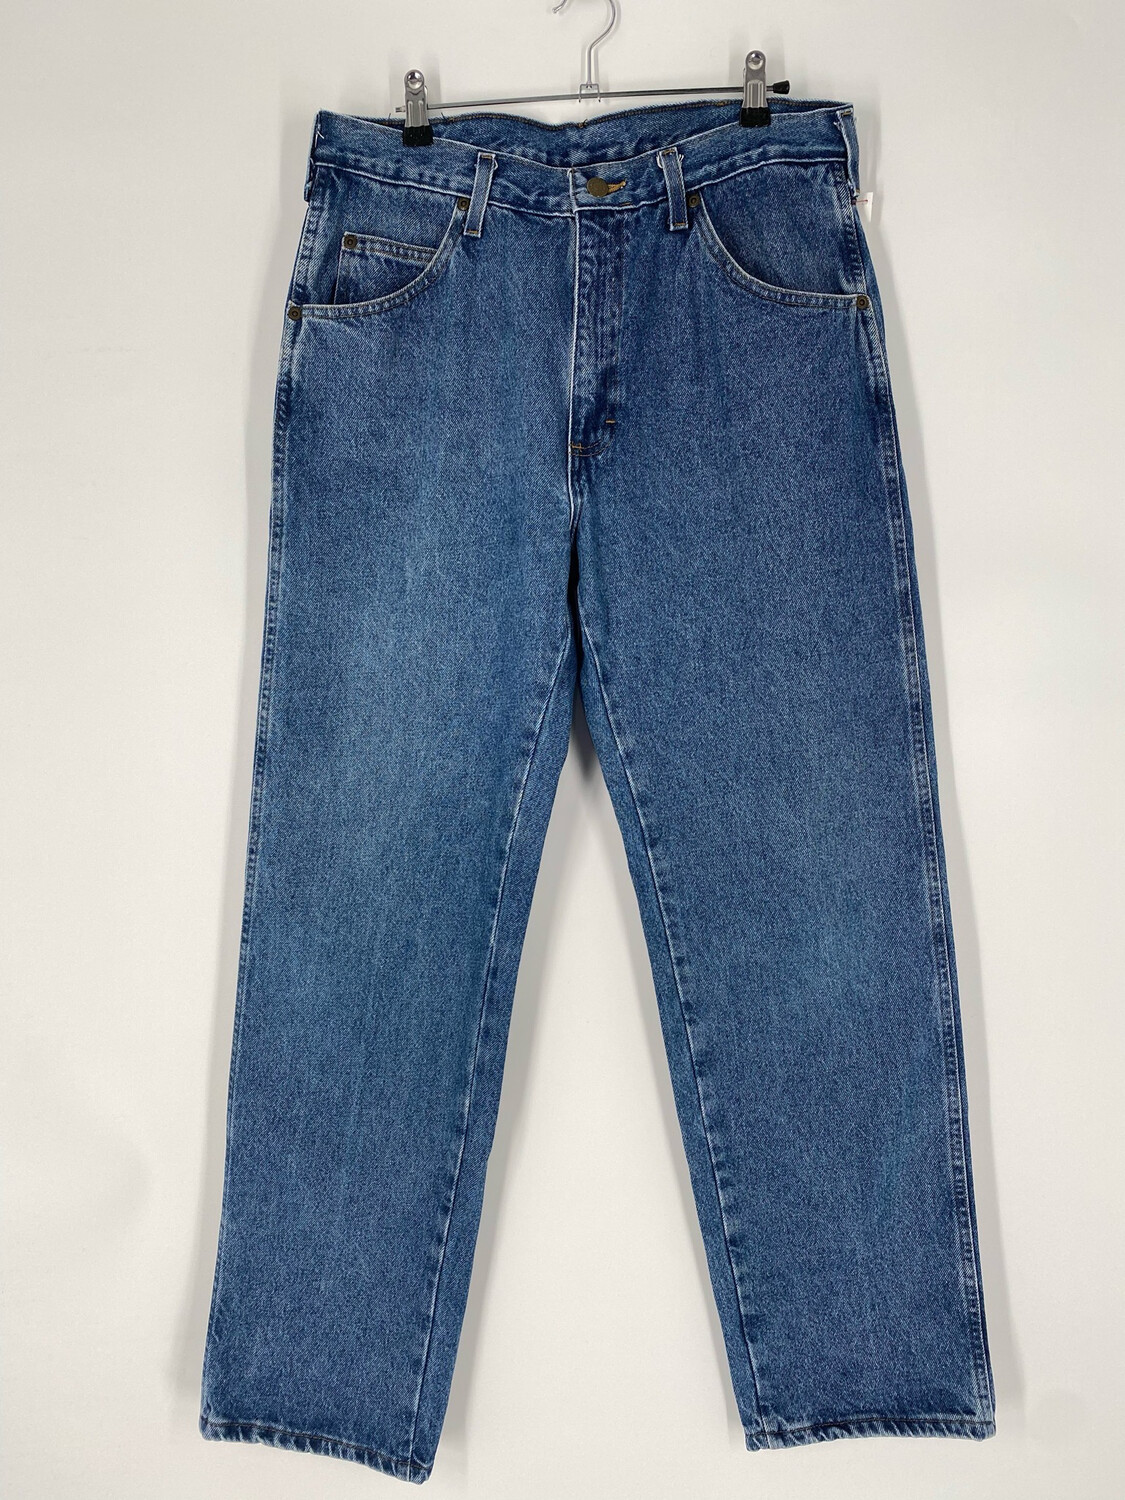 Wrangler Relaxed Fit Jean Size 34